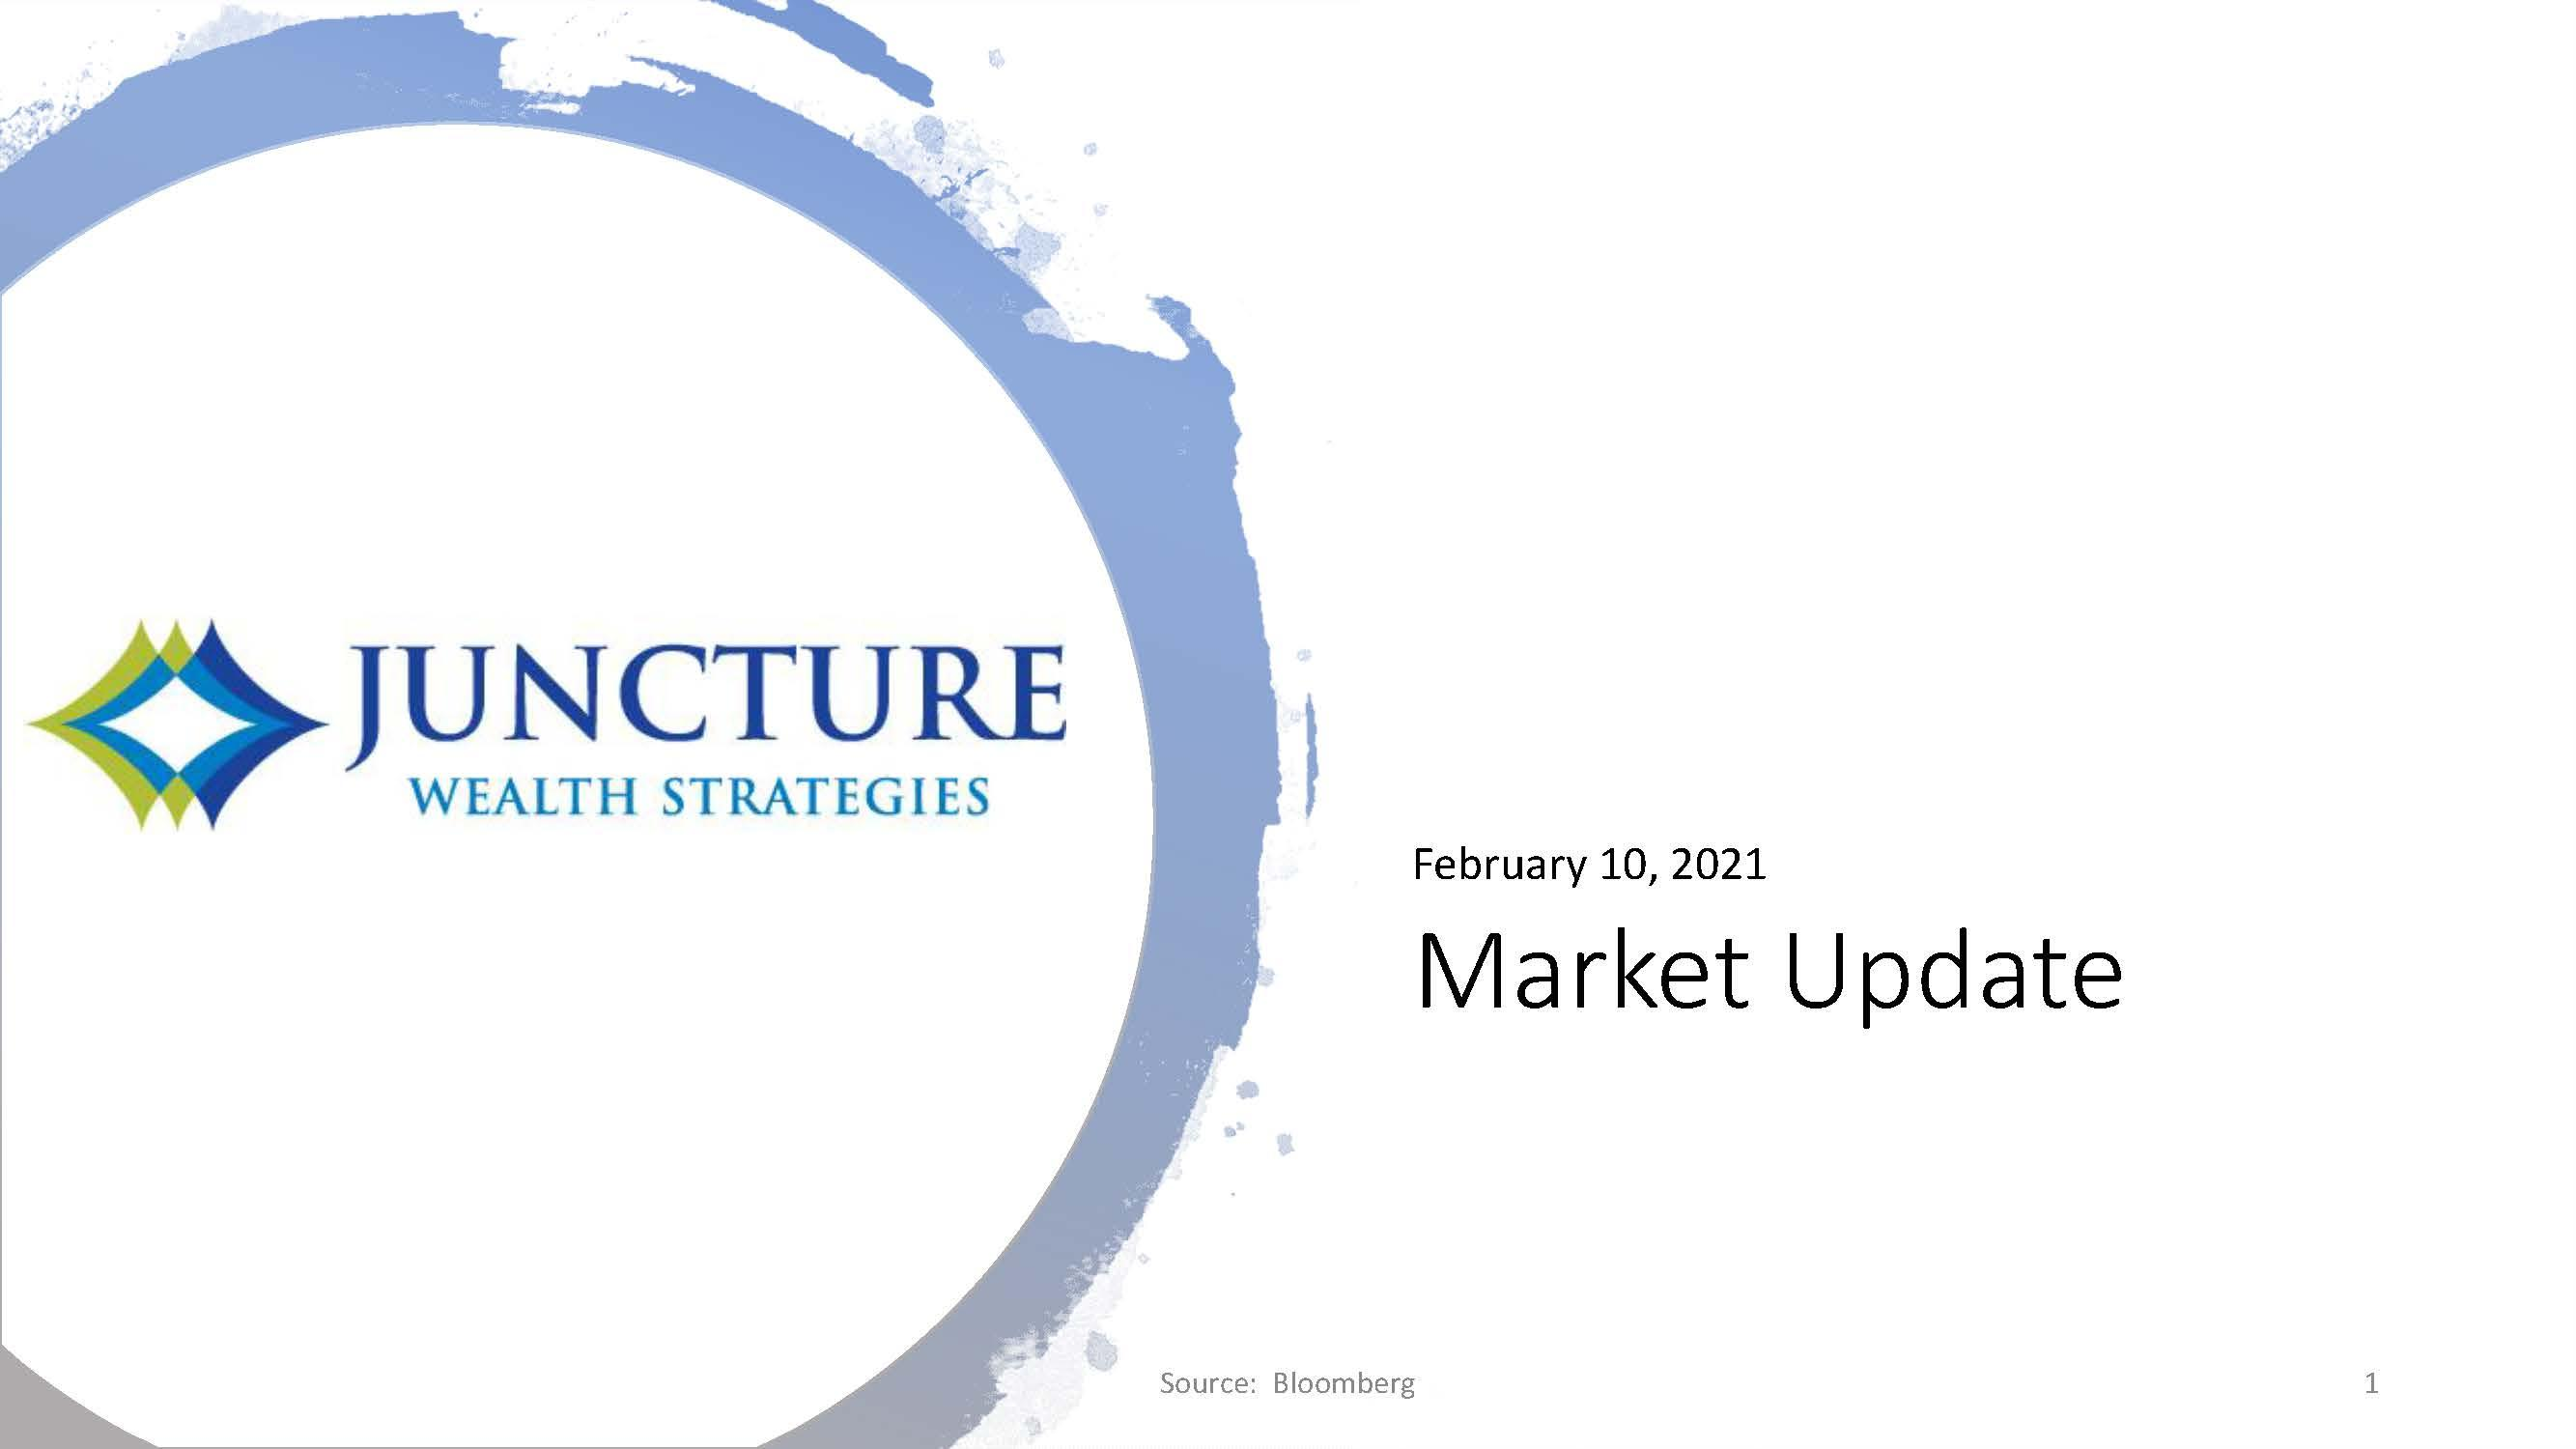 Juncture Wealth Strategies - February 2021 Market Update Thumbnail